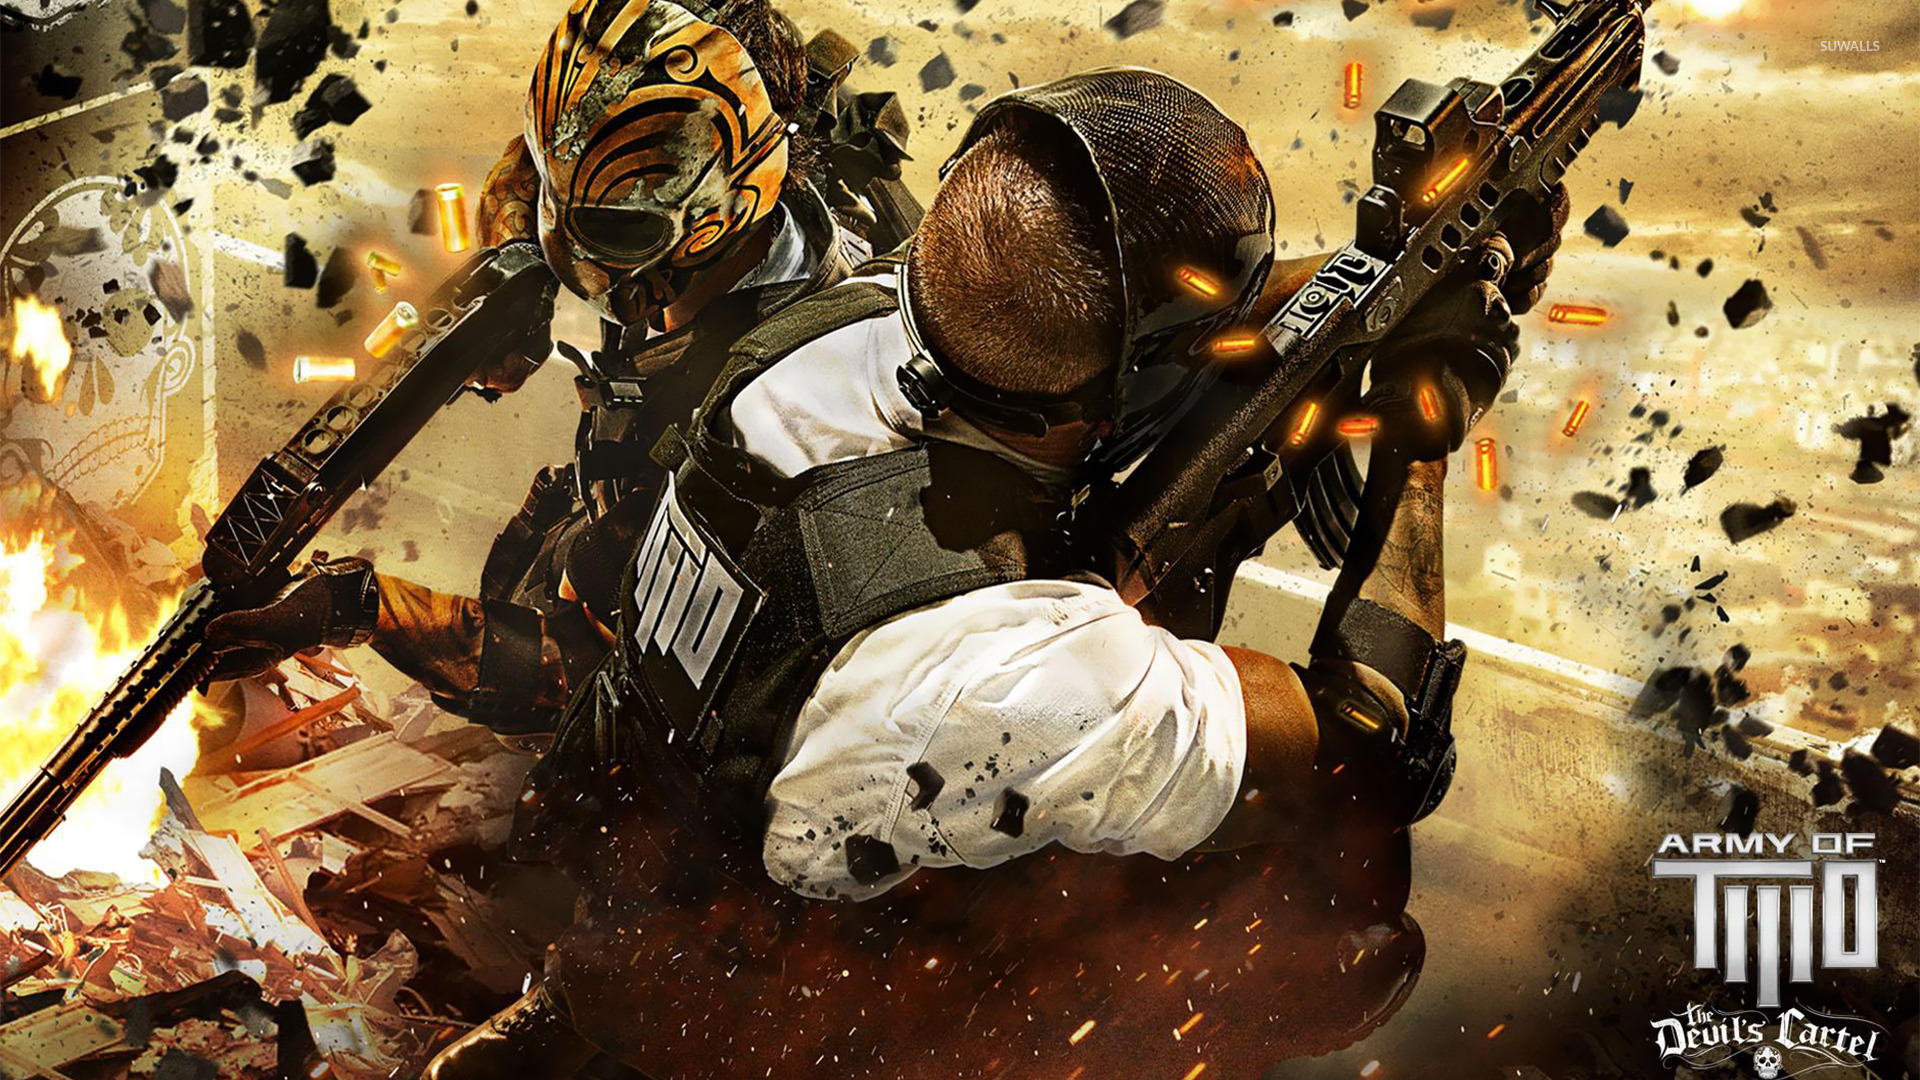 Army Of Two: The Devil's Cartel [2] Wallpaper